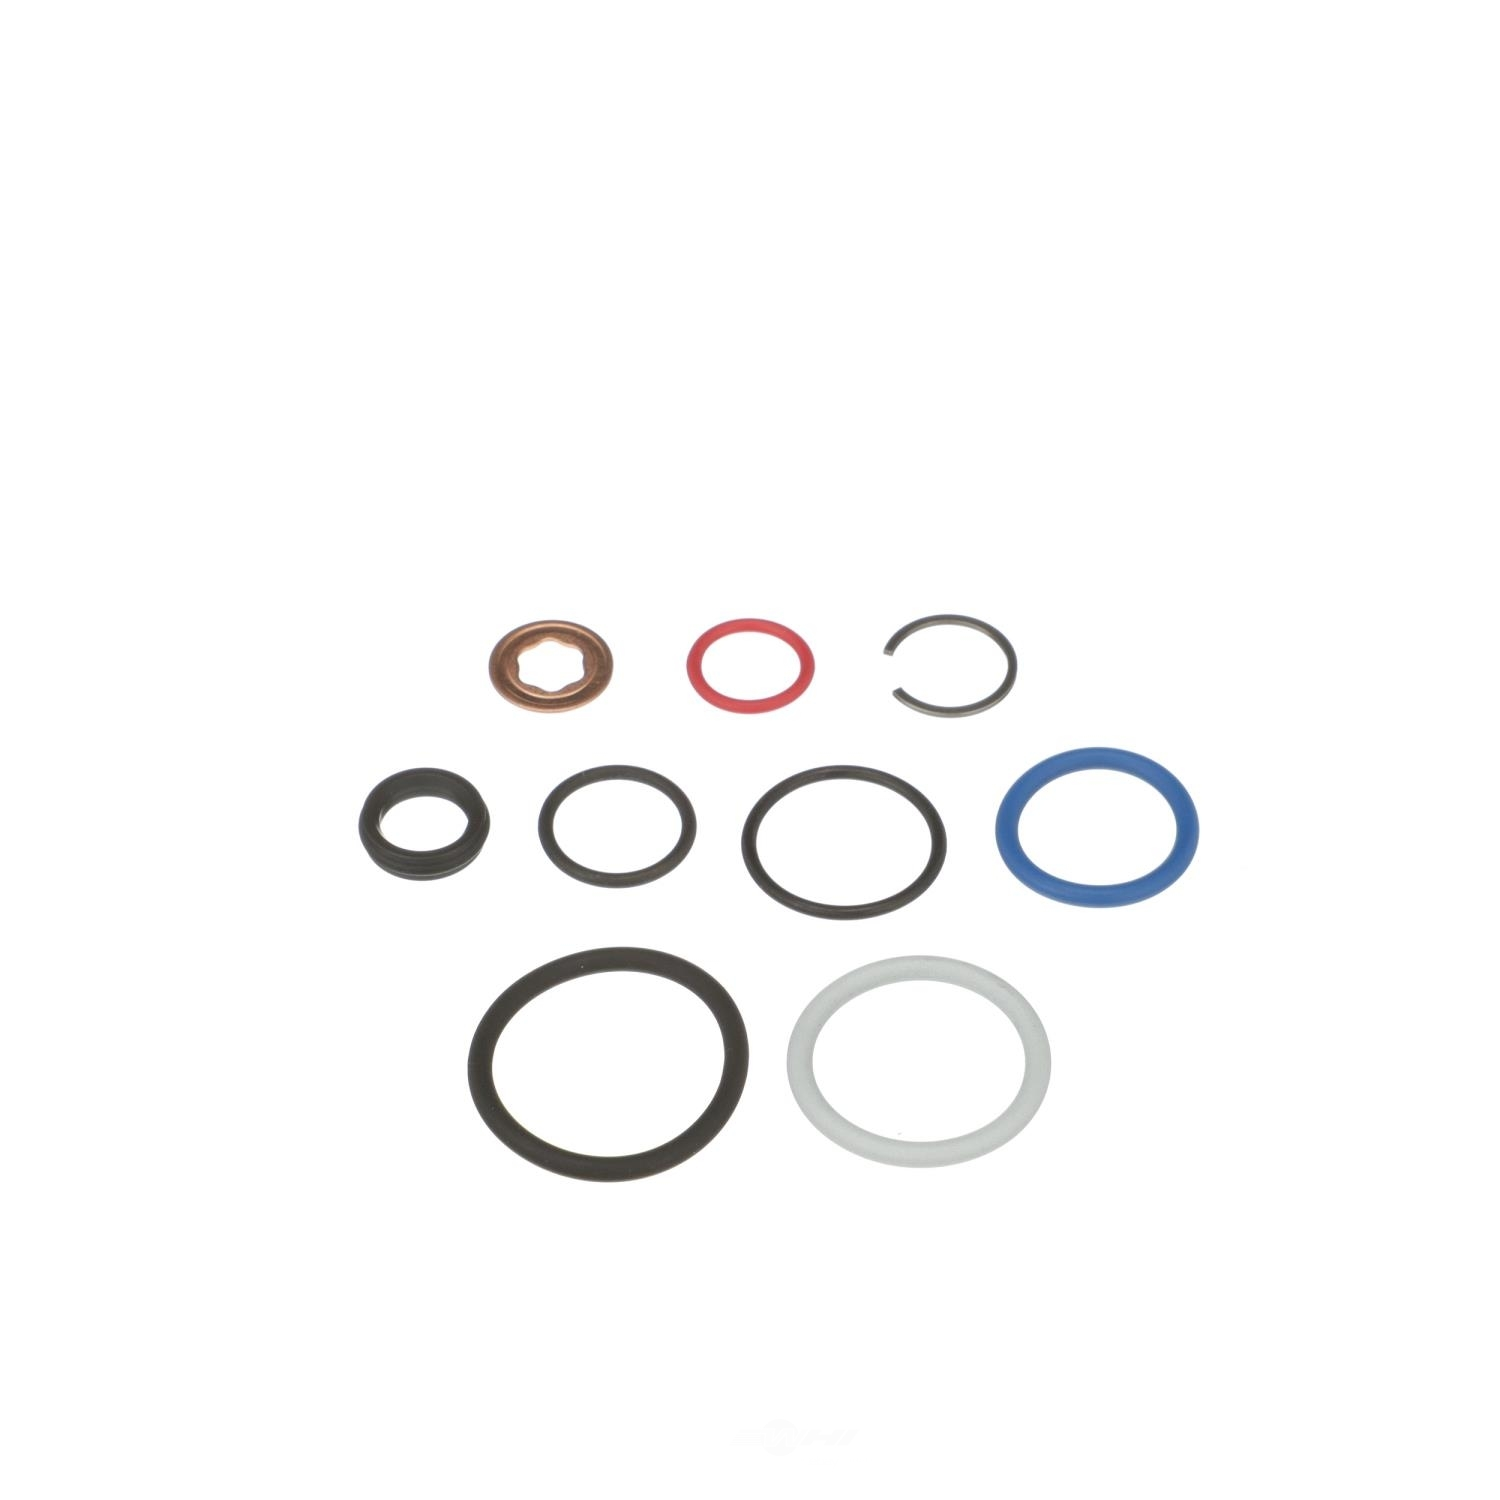 Air Filters Replacement Parts Replace Hc5 900 Pack